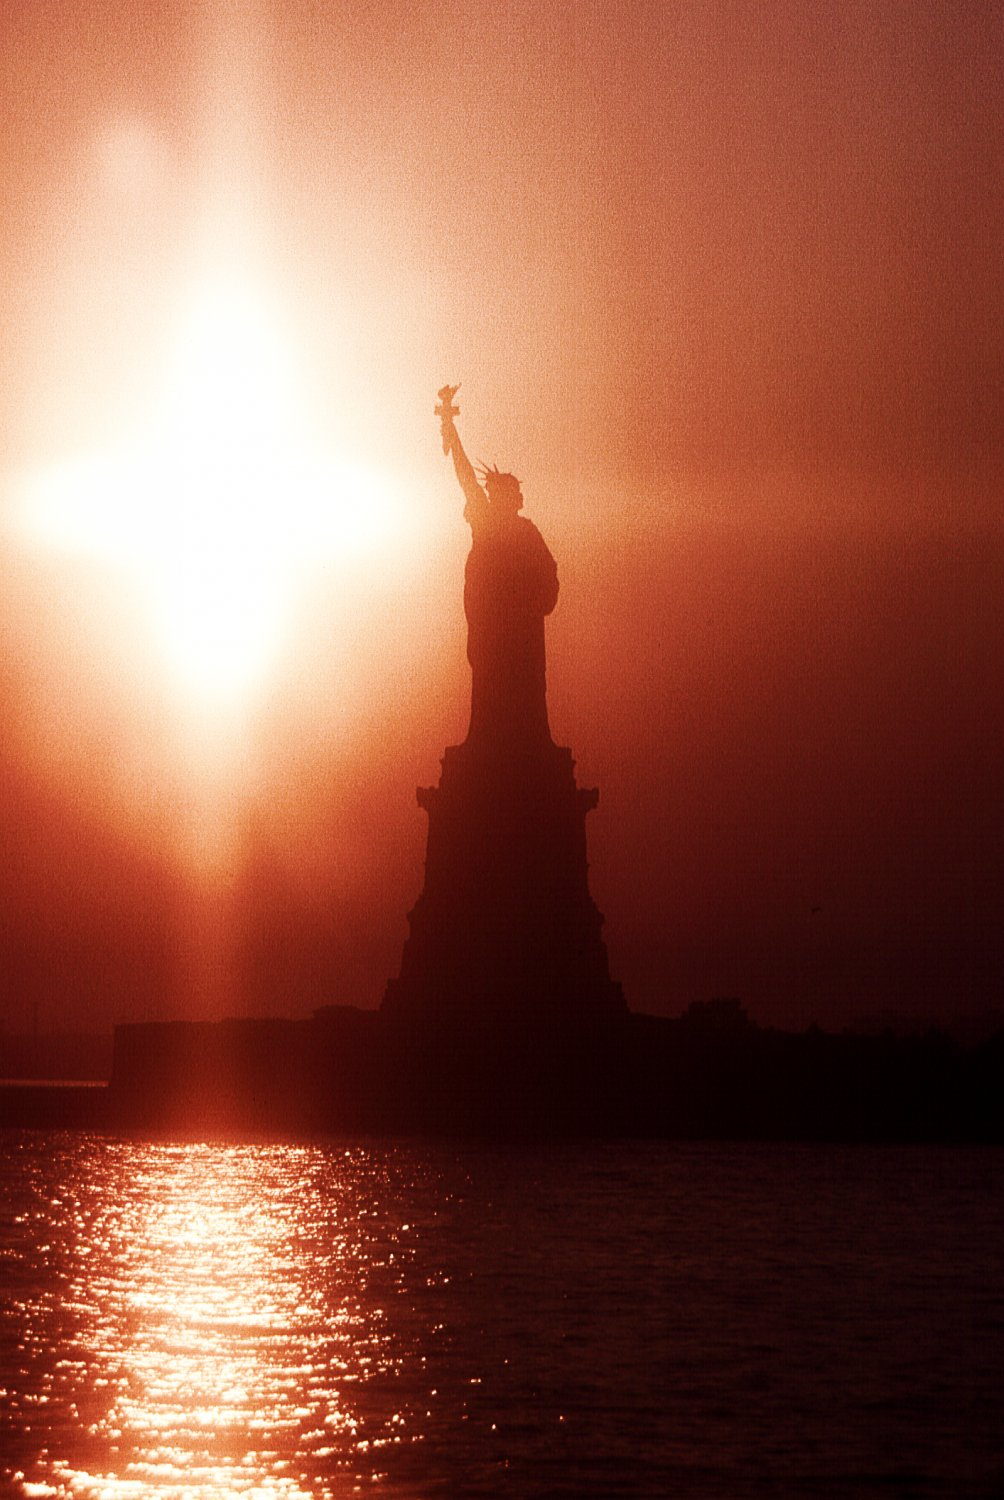 - Statue of Liberty - Custom-made 200mm diffusion lens - 1962 - - art  - photography - by Tony Karp